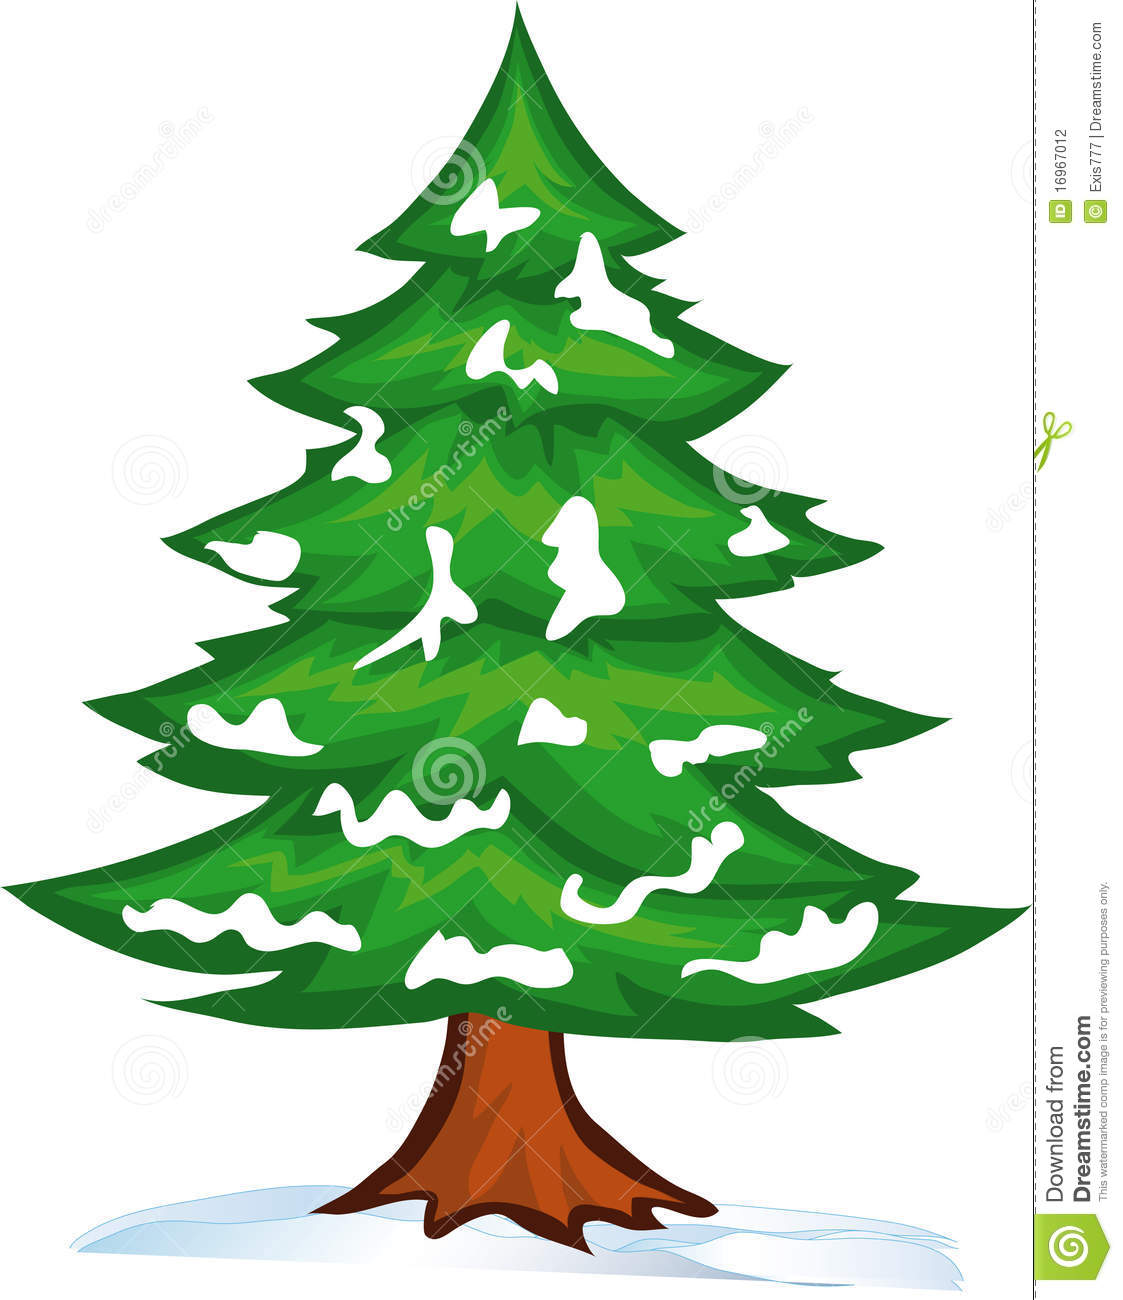 1123x1300 Pine Tree Clip Art For Christmas Fun For Christmas